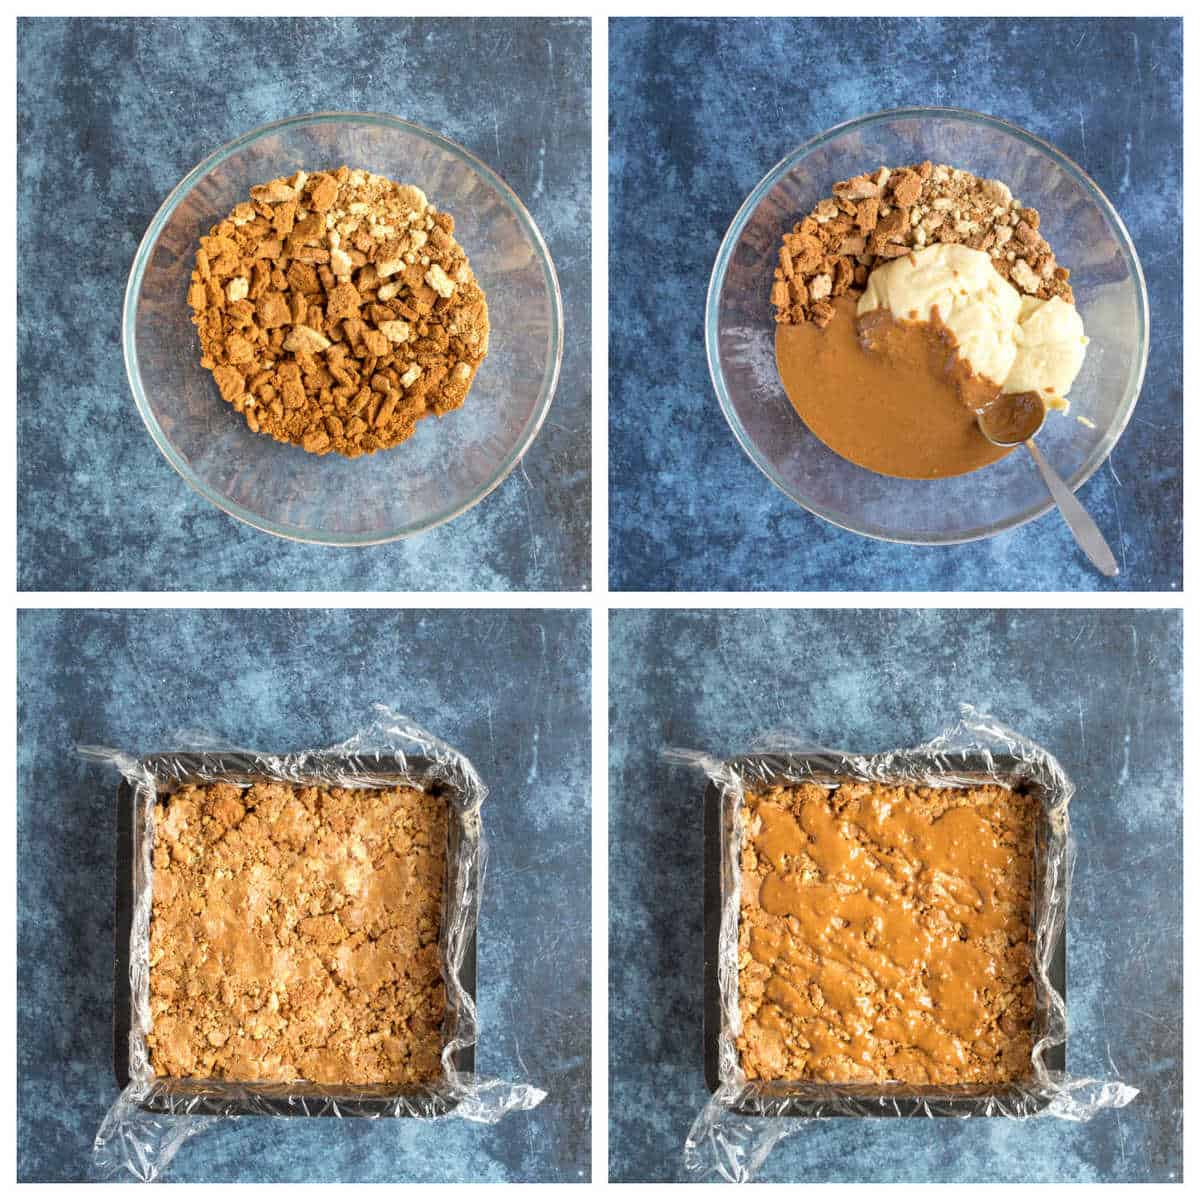 Step by step photo instructions for making biscoff fridge cake